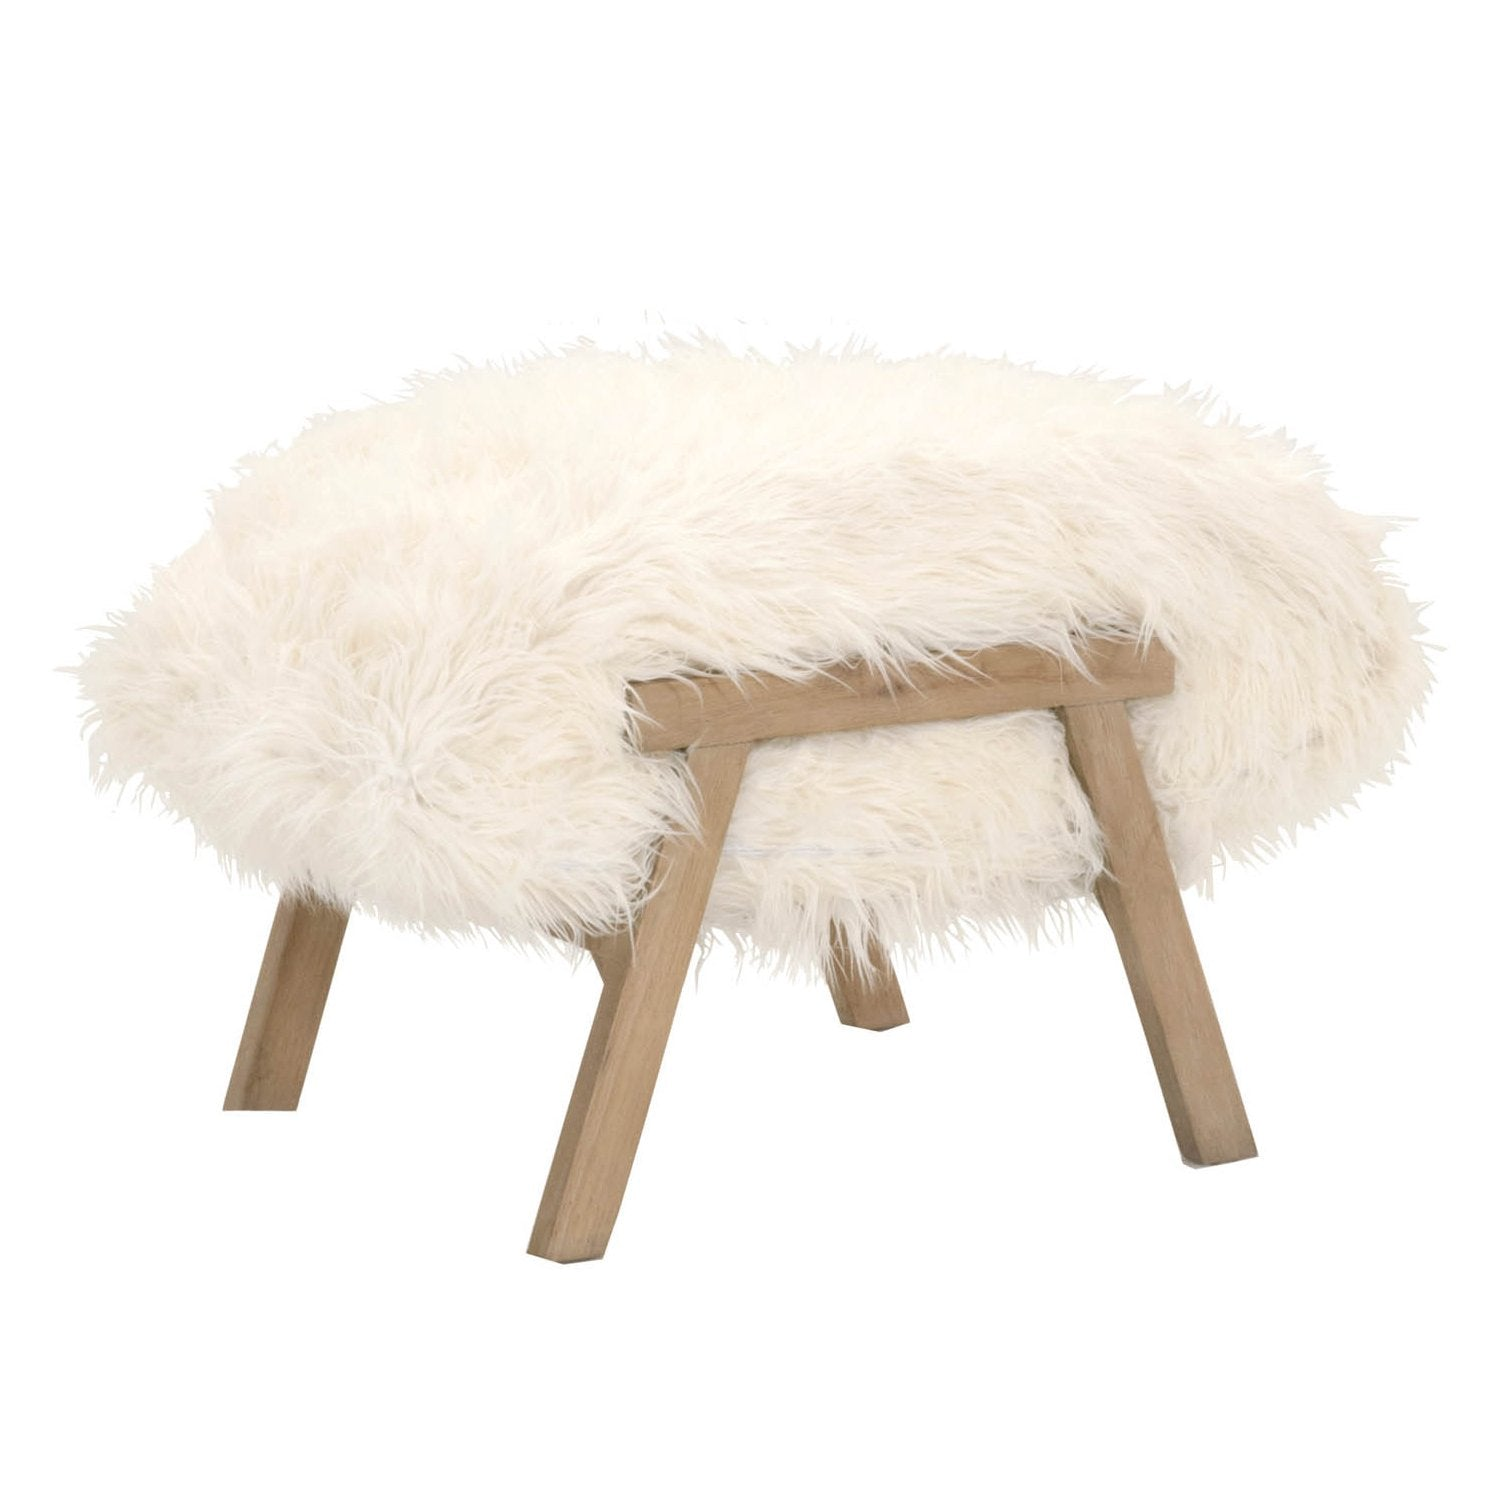 Essentials for Living Stools & Ottomans